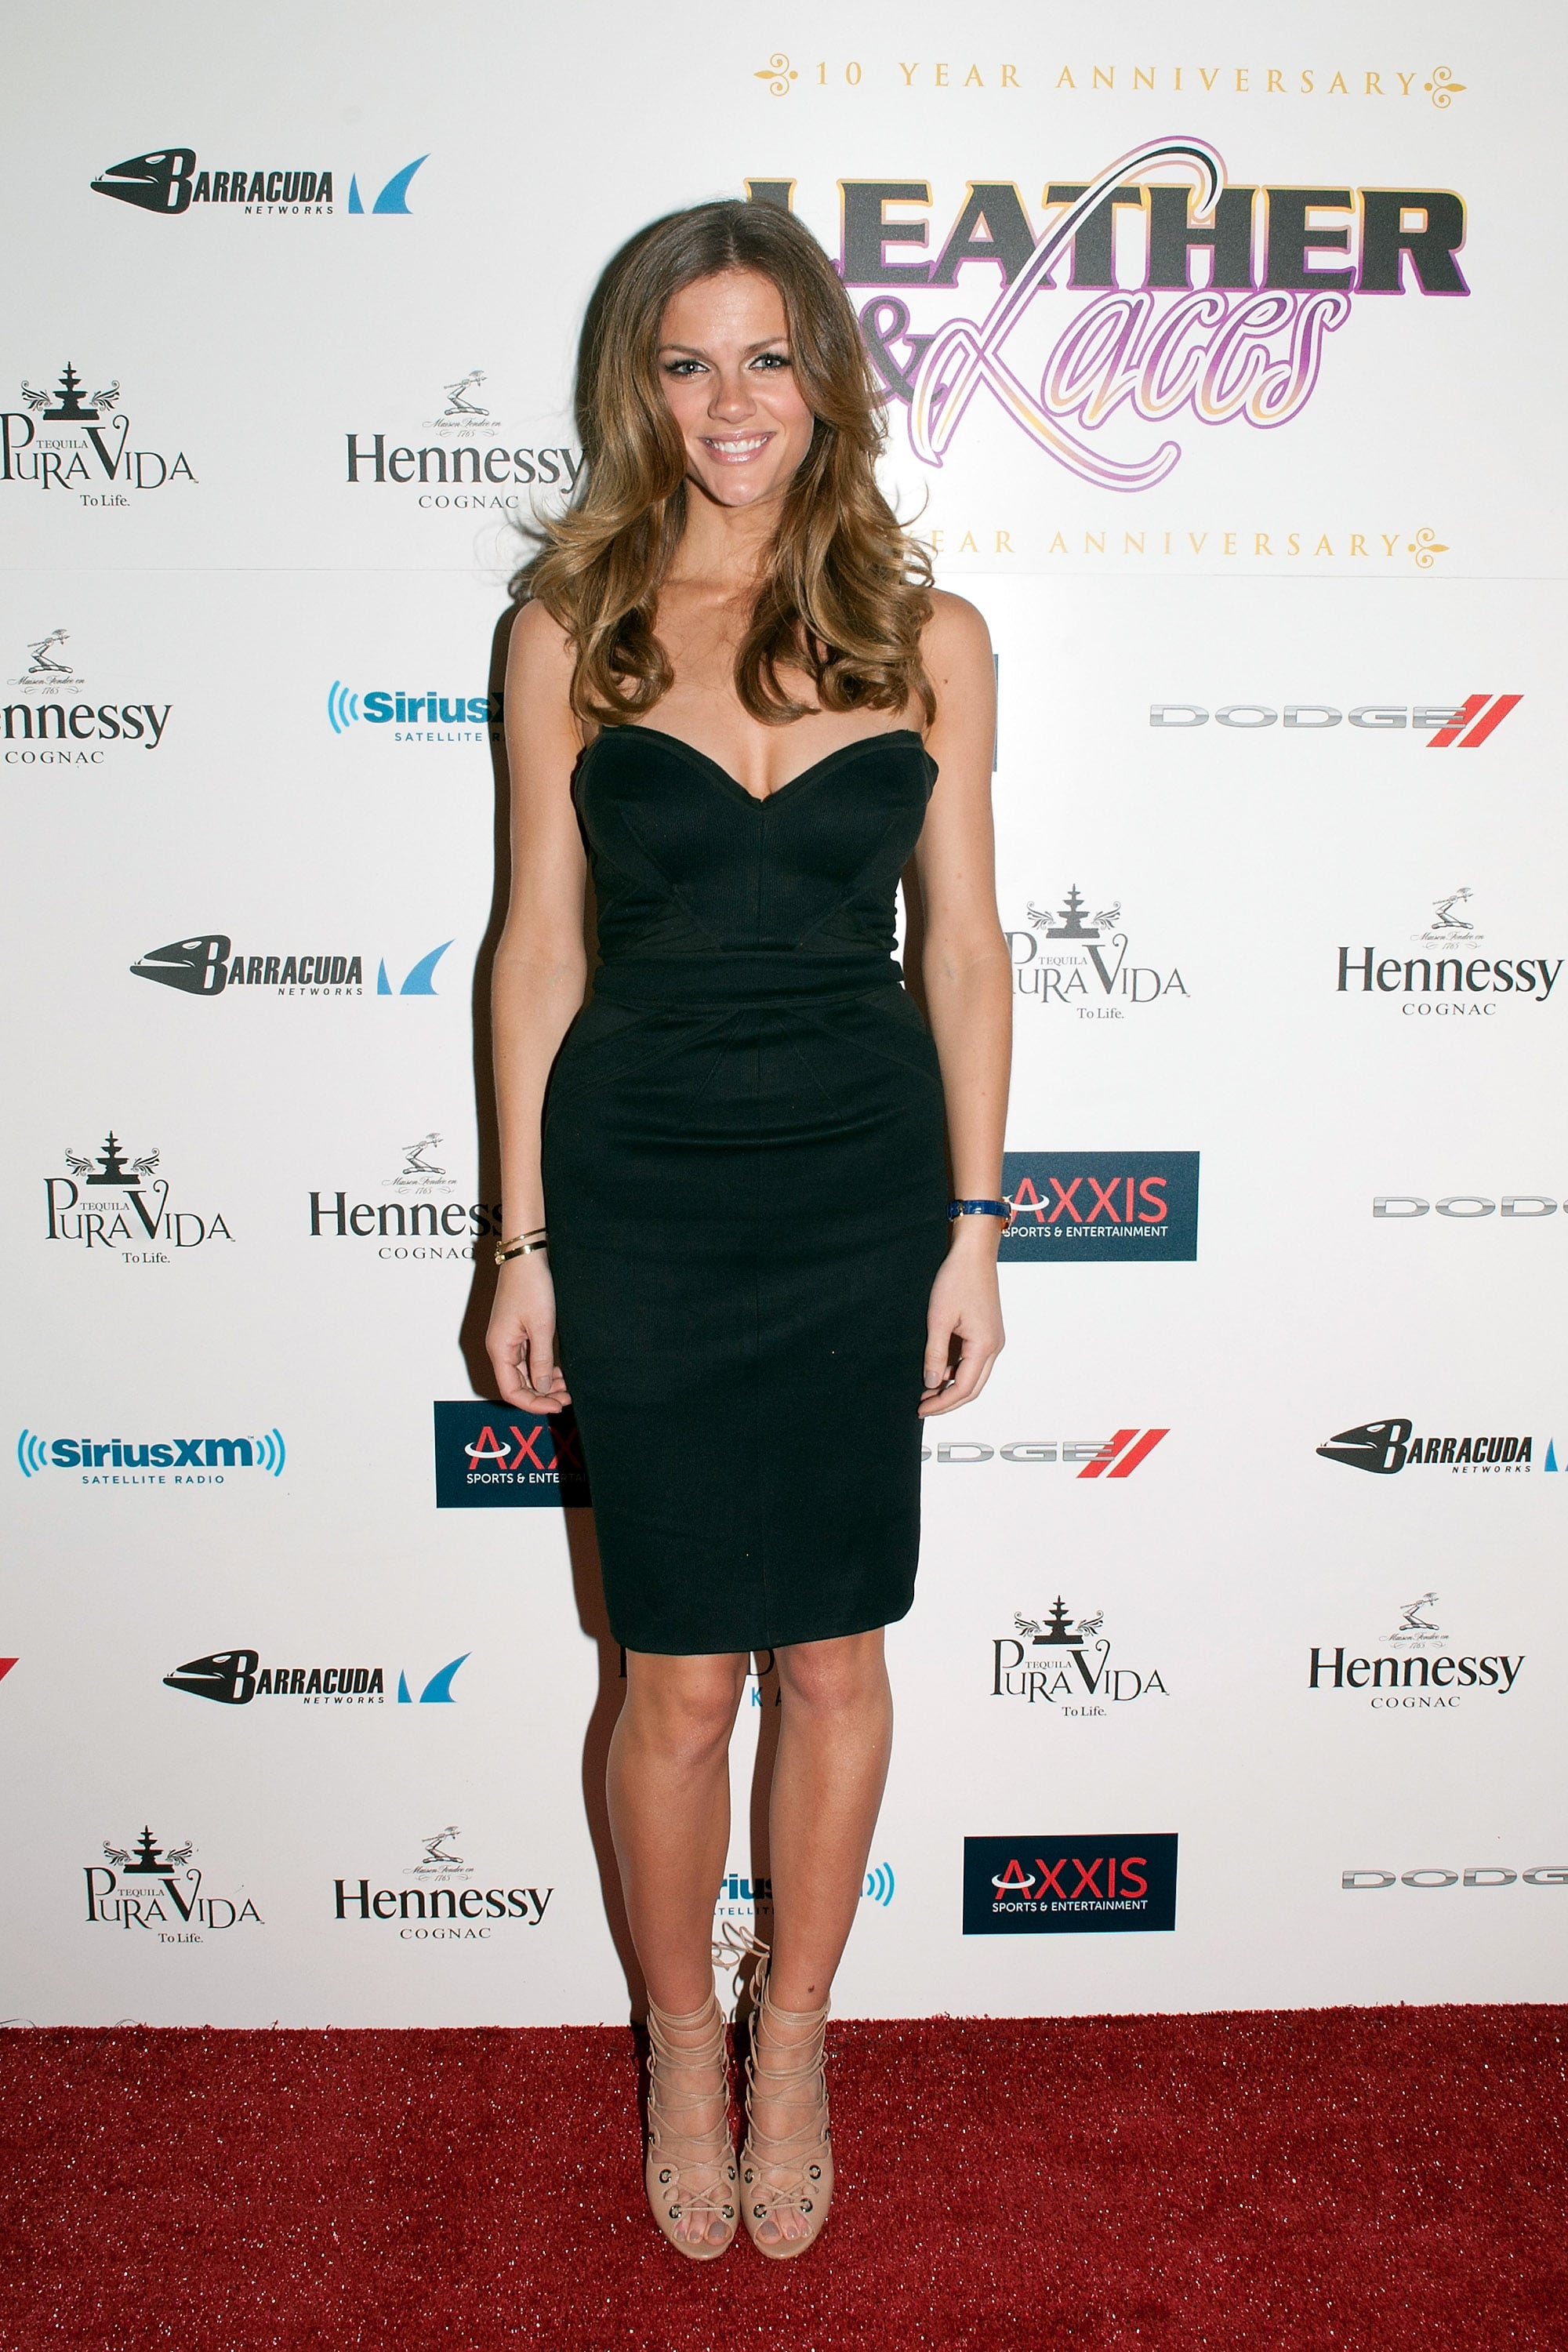 Brooklyn Decker struck a sexy note in a black Zac Posen sweetheart-shaped cocktail dress and nude lace-up sandals.